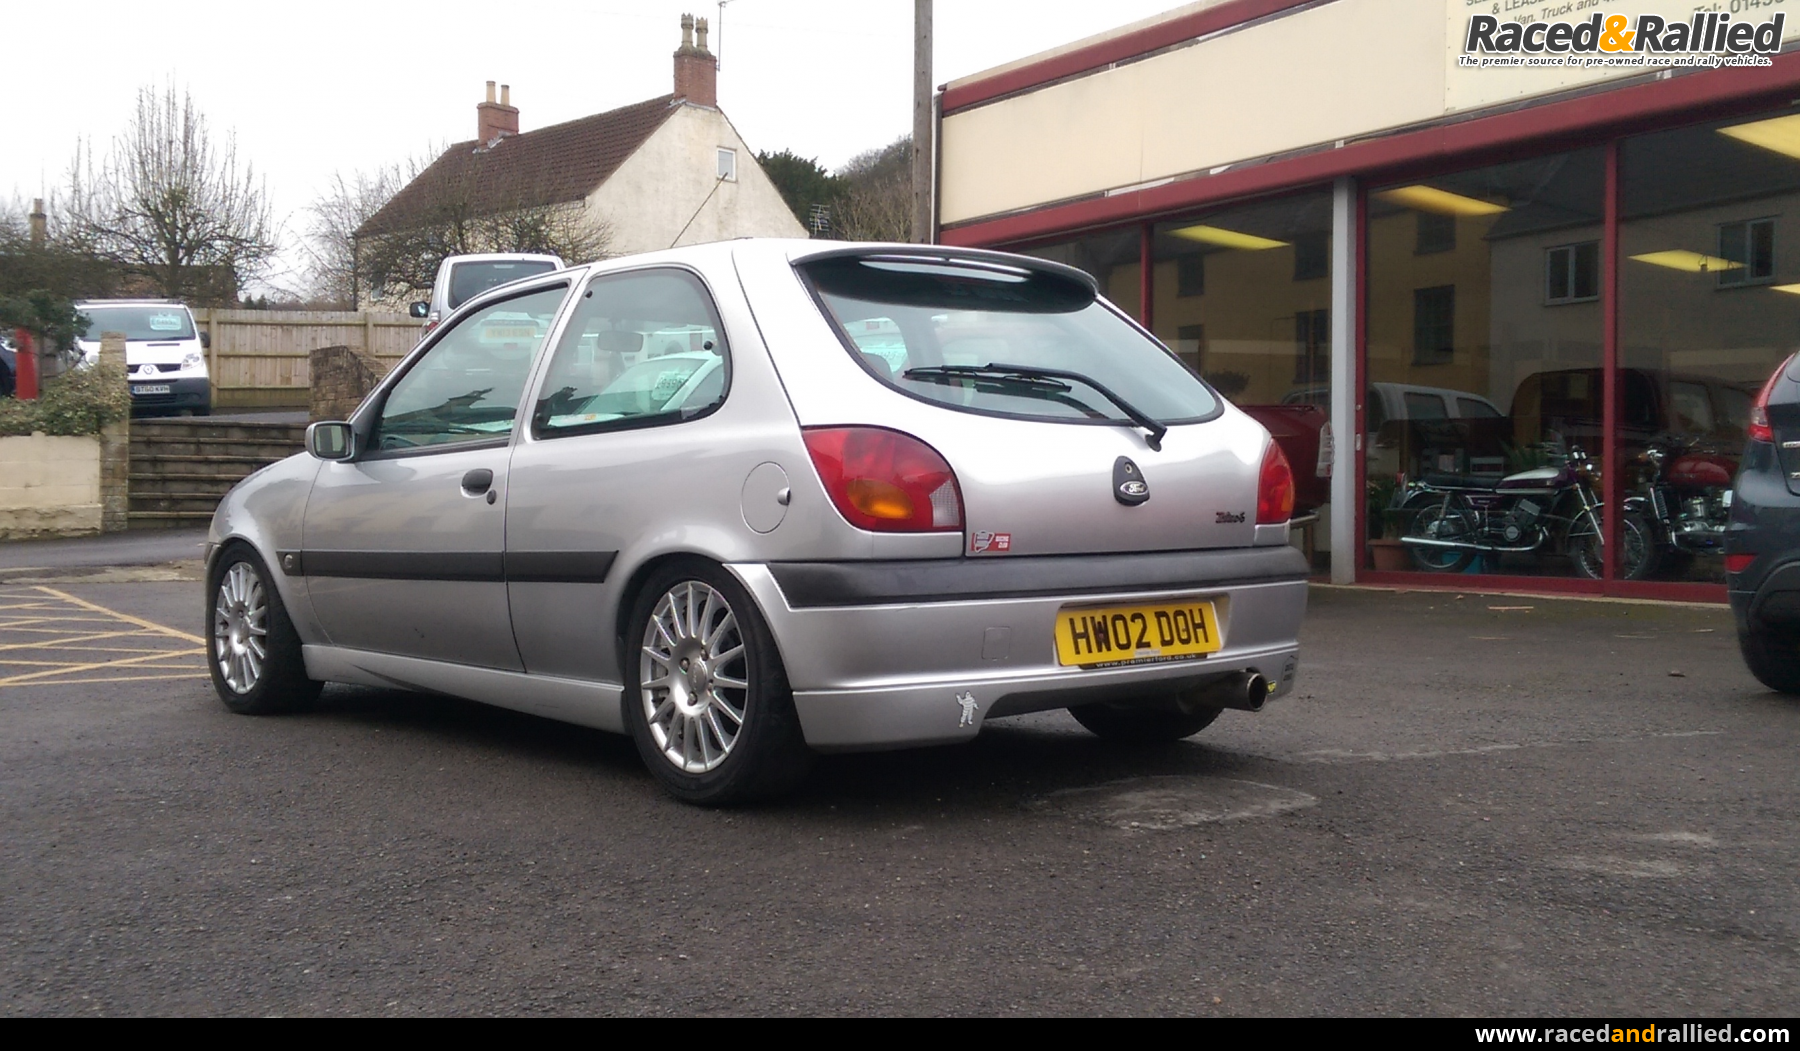 Race Car For Sale >> 2002 fiesta zetec S | Performance & Trackday Cars for sale ...